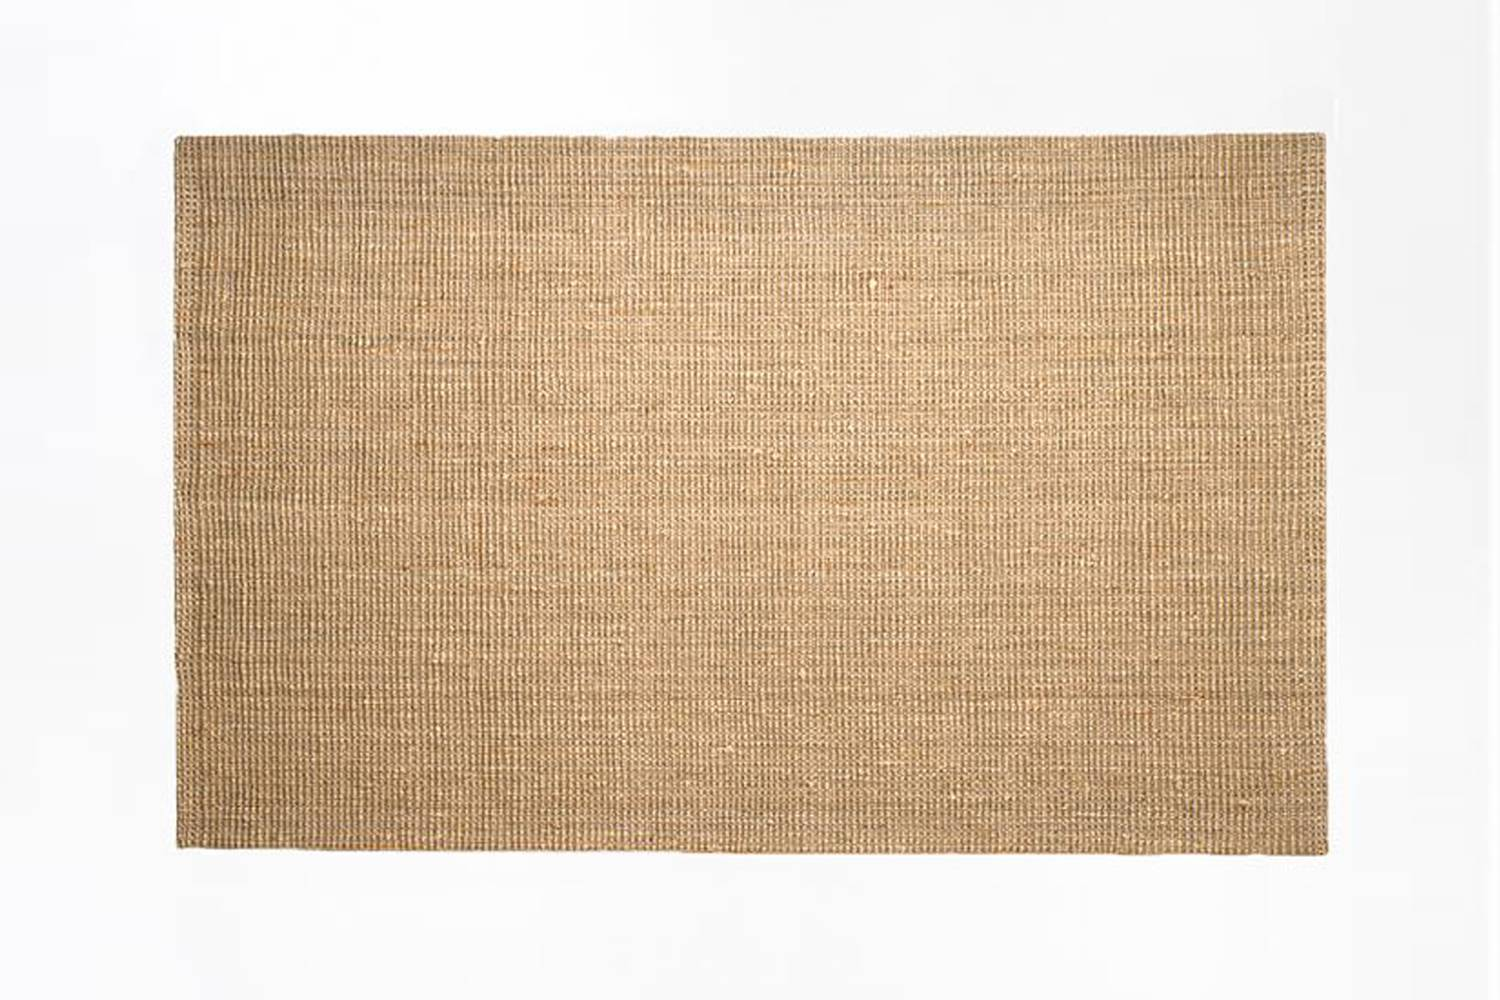 The Jute Boucle Rug comes in a range of sizes priced from $src=